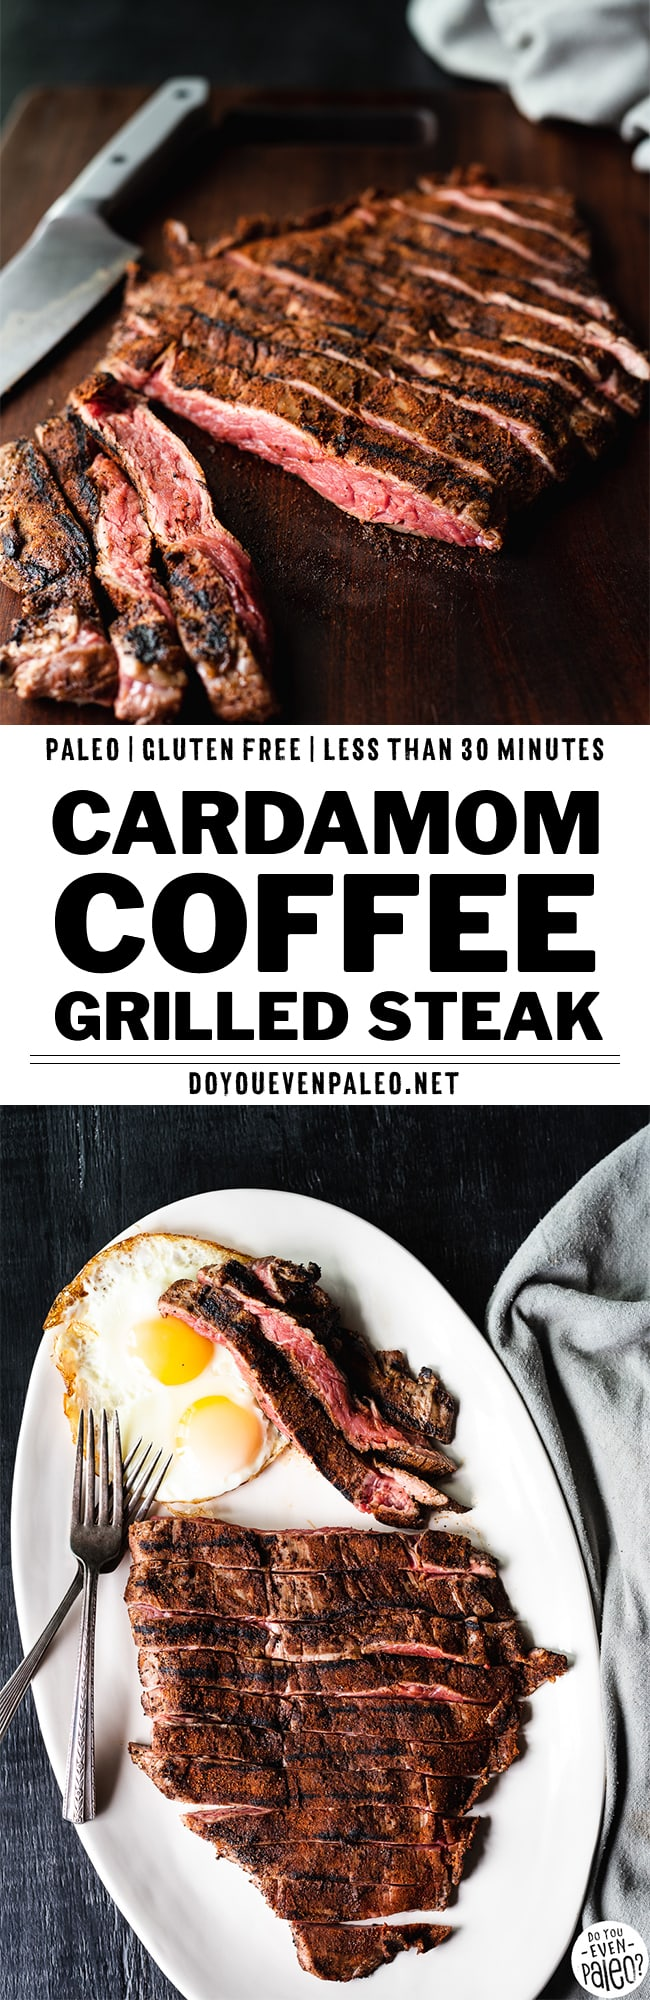 Cardamom Coffee Rubbed Steak | DoYouEvenPaleo.net